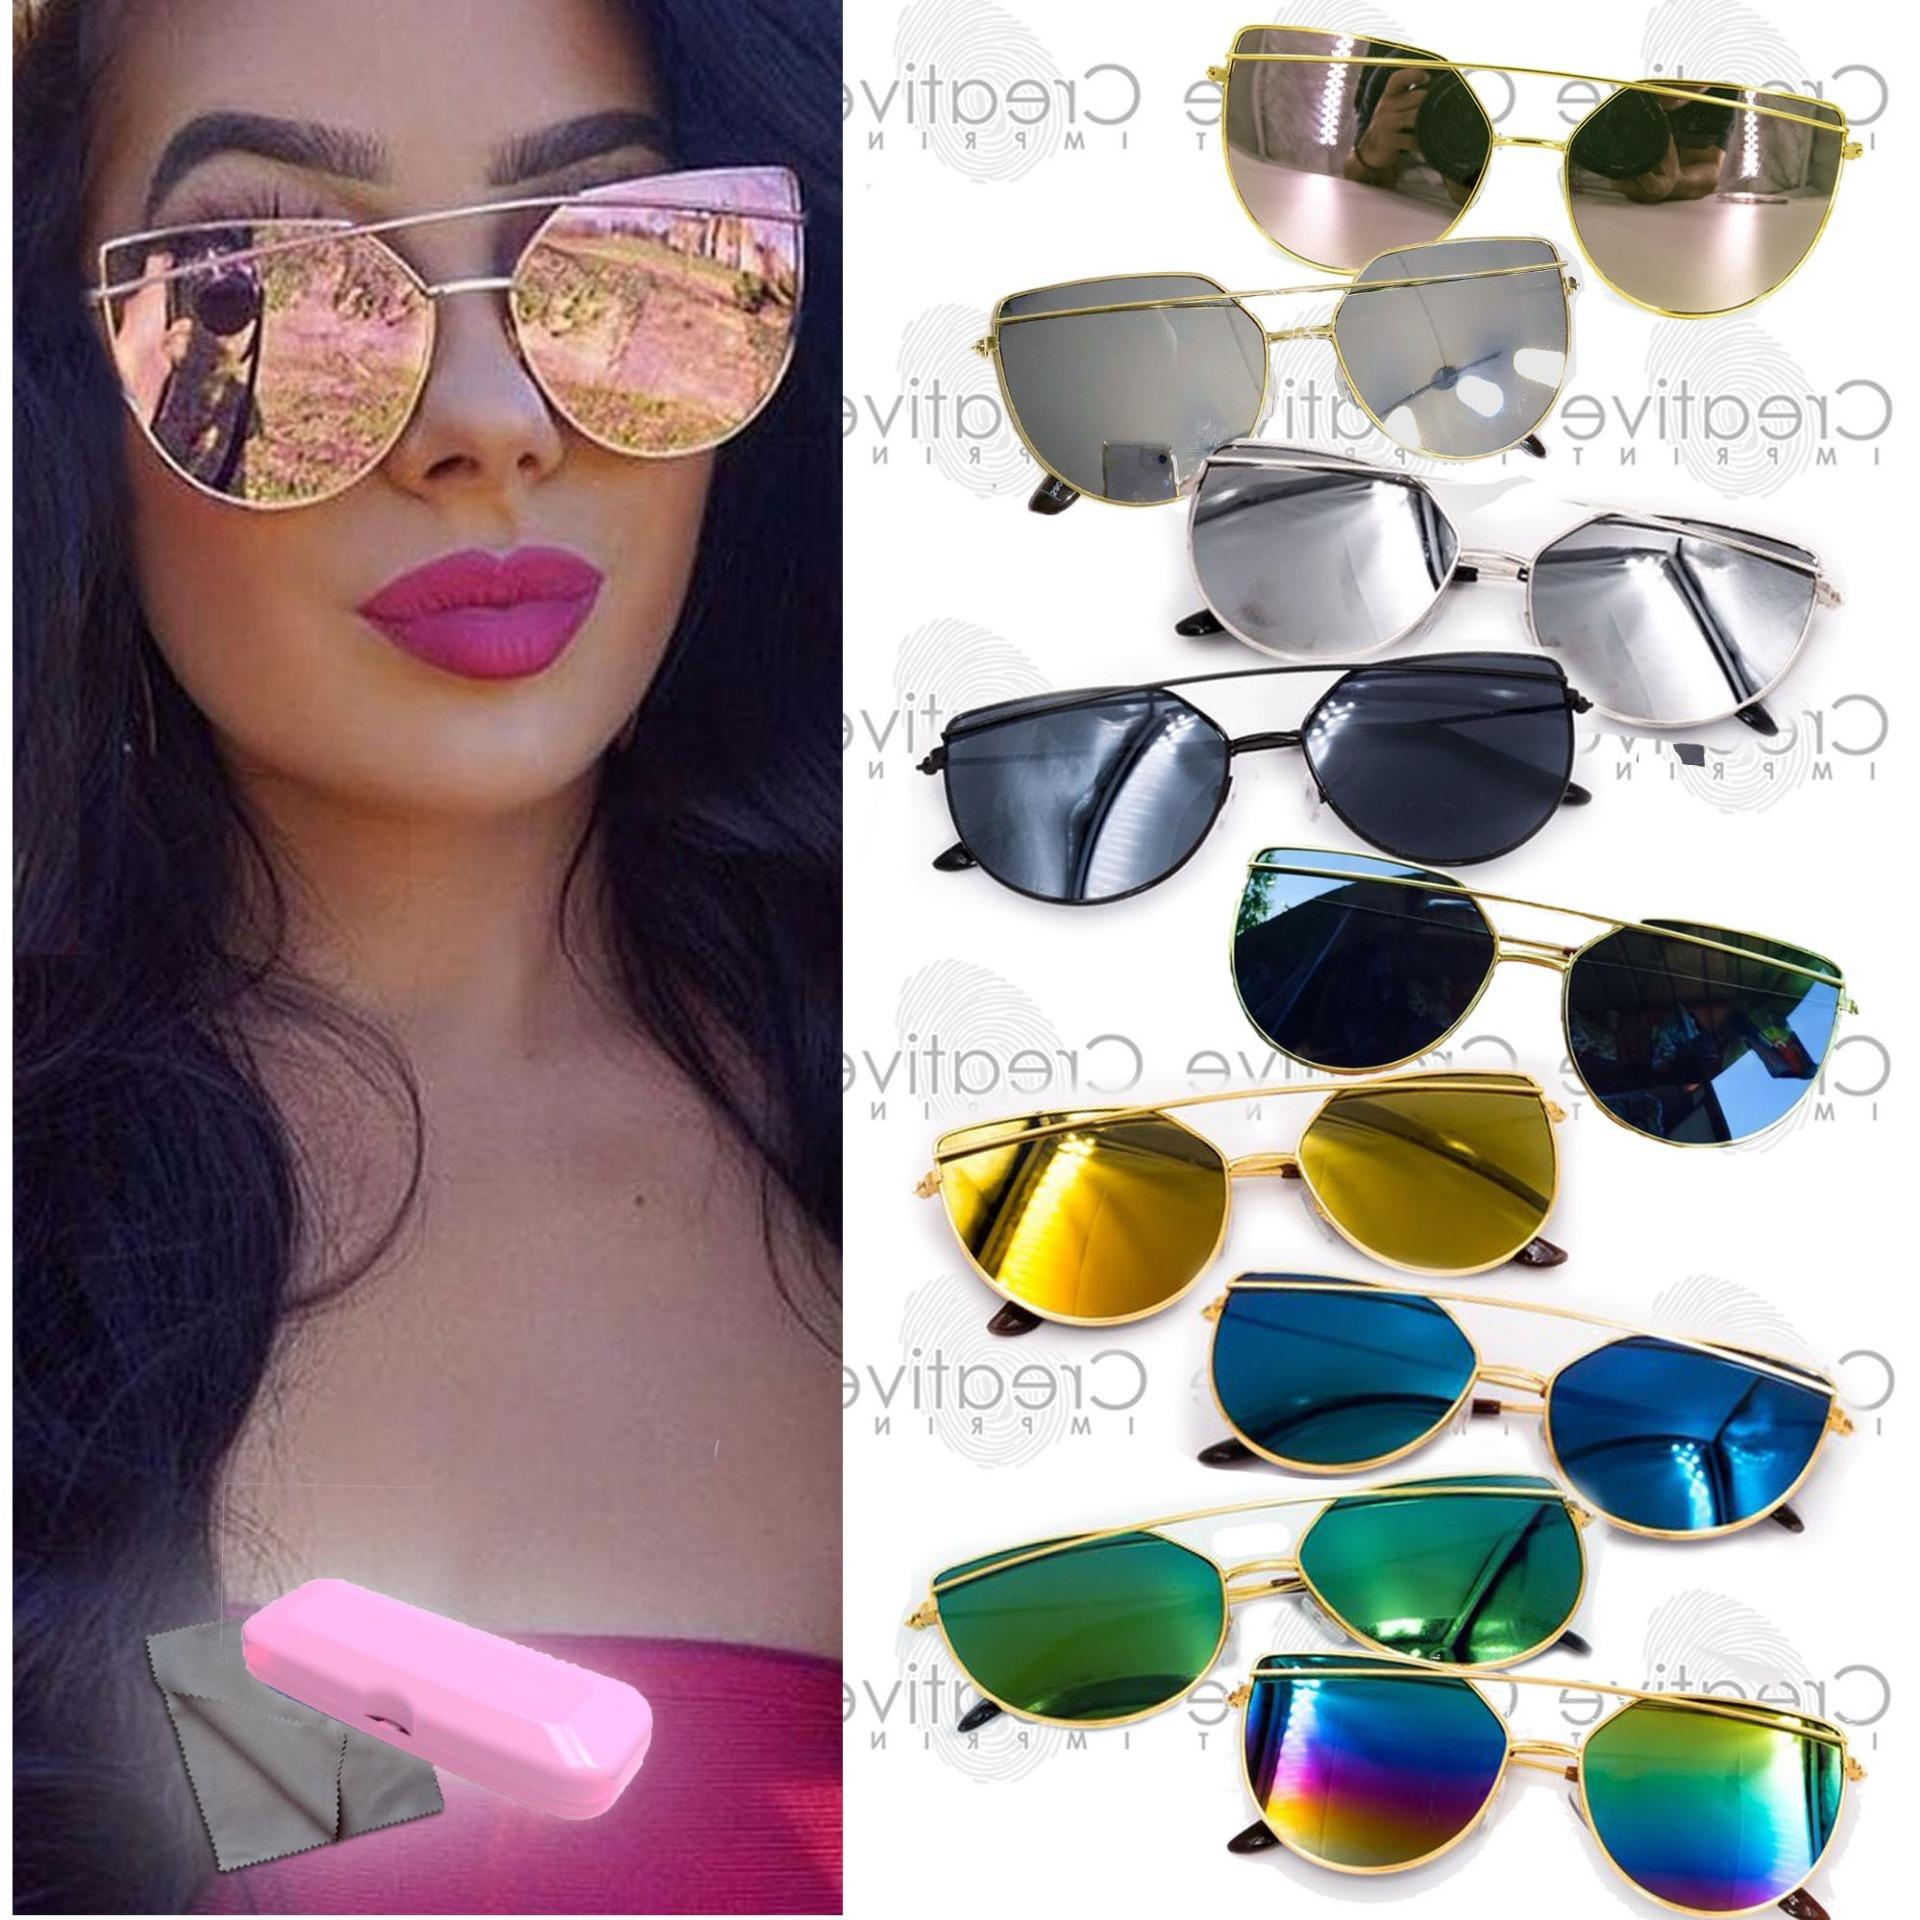 0fb553bdf56 Double Bridge Cat Eye Flat Sunnies Sunglasses (FREE CASE WIPER) Shades  Light Metal Lens